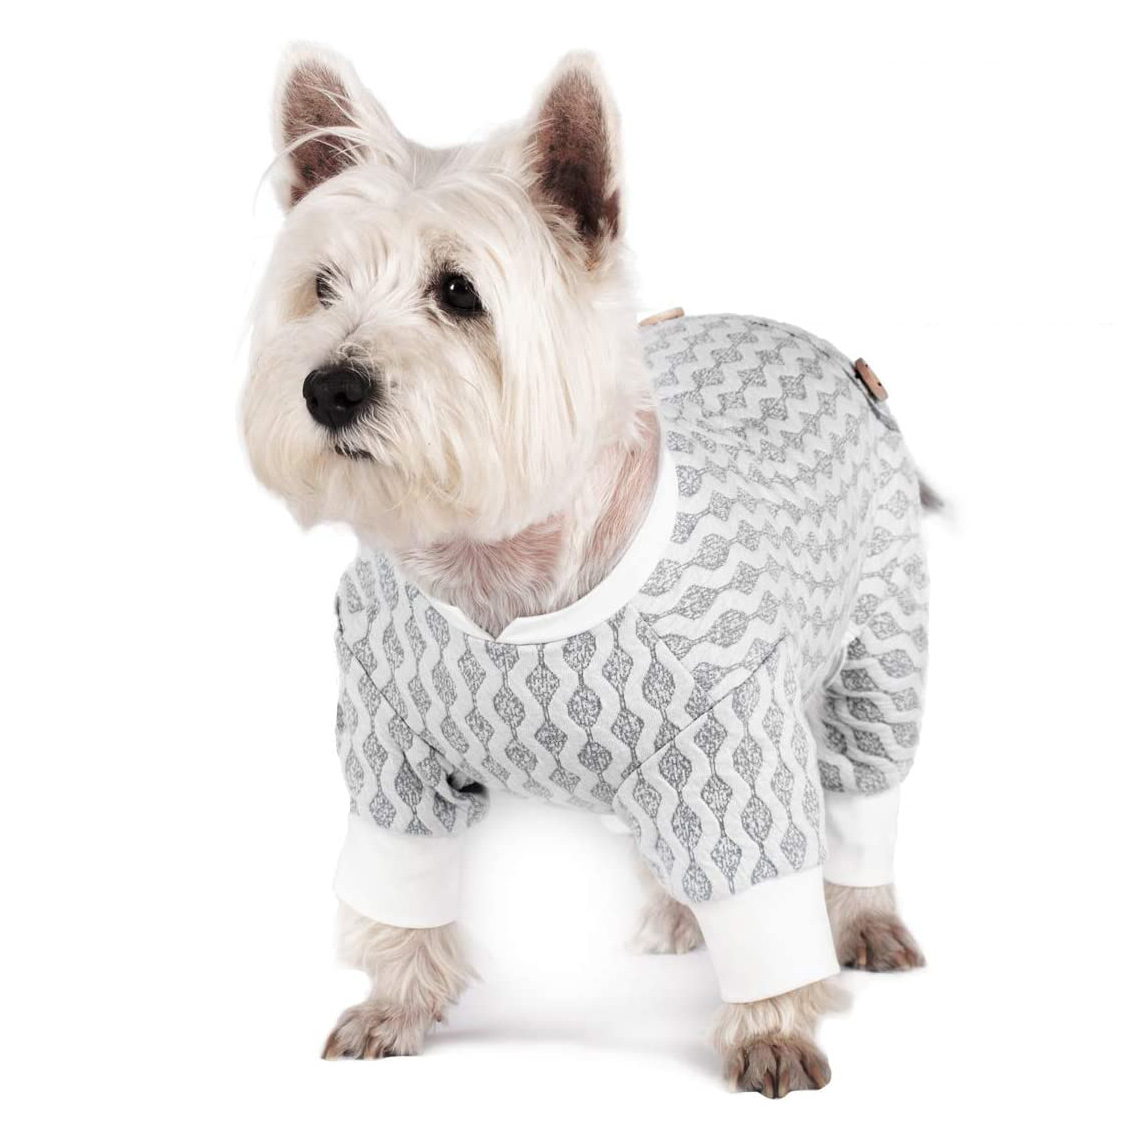 Dog wearing a KYESSE Stretchable Dog Pajama Jumpsuit on a white background